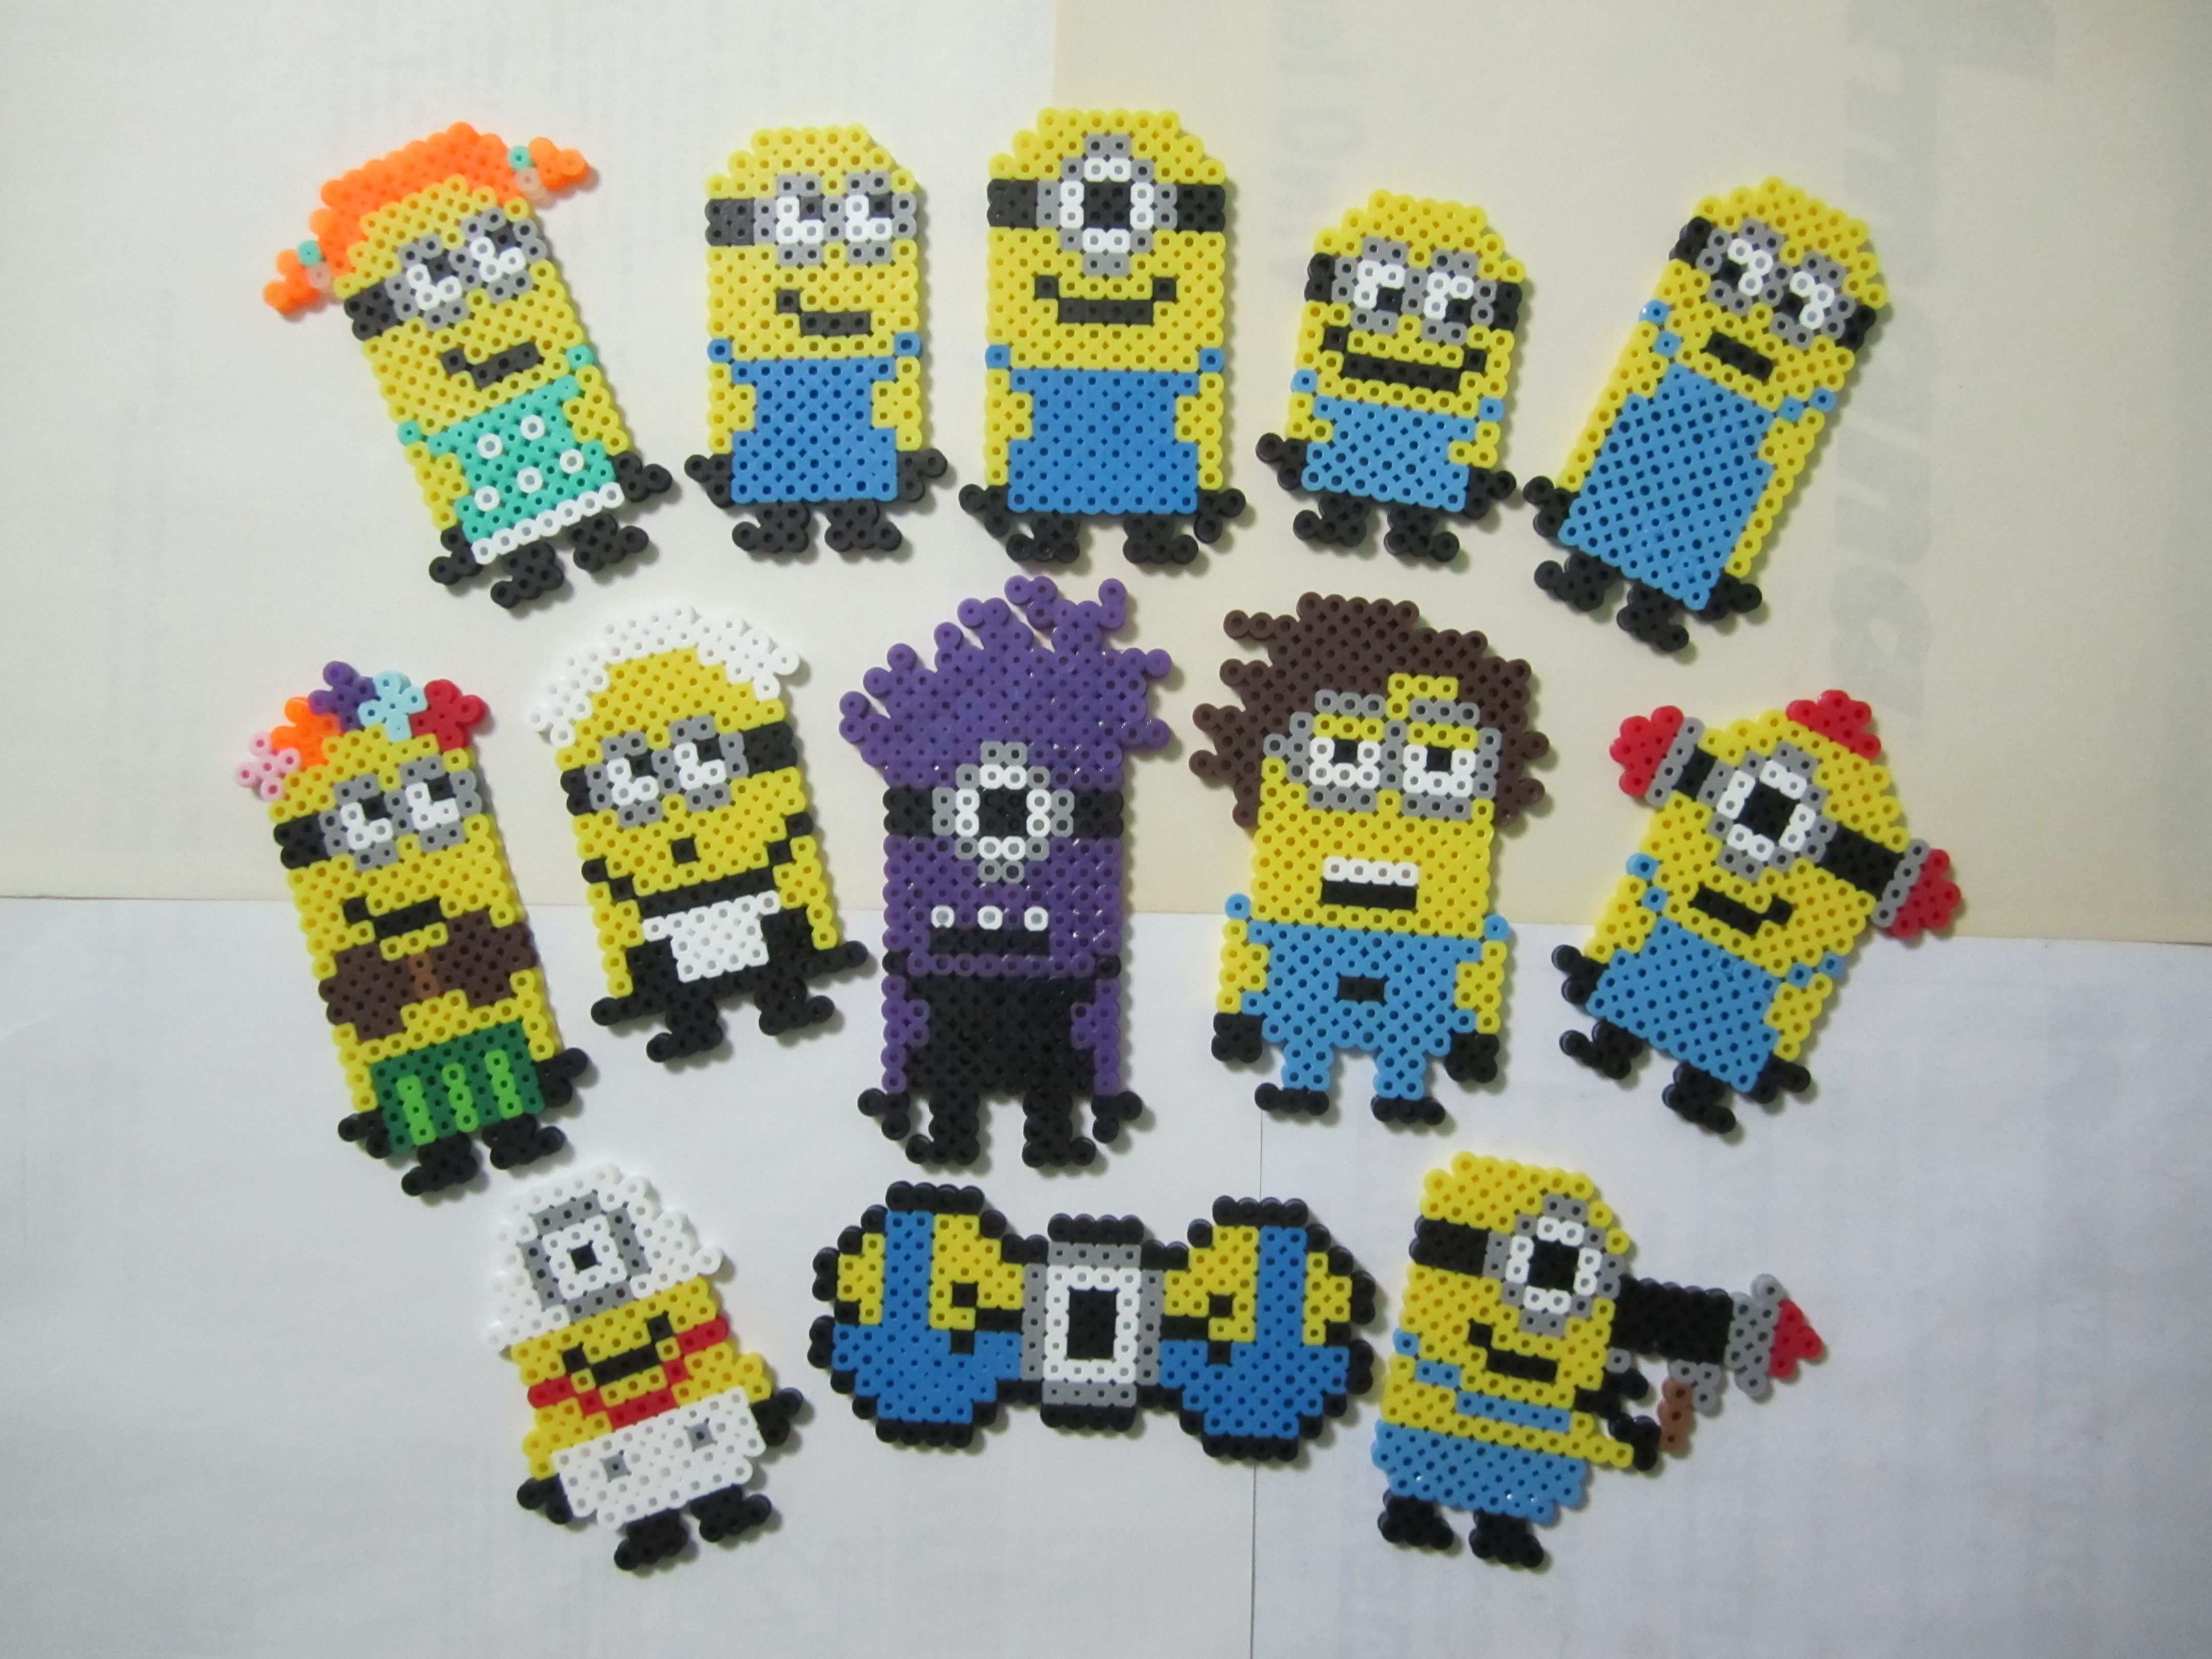 Pin By Spaci On Mignon Perler Bead Patterns Perler Beads Designs Perler Bead Templates